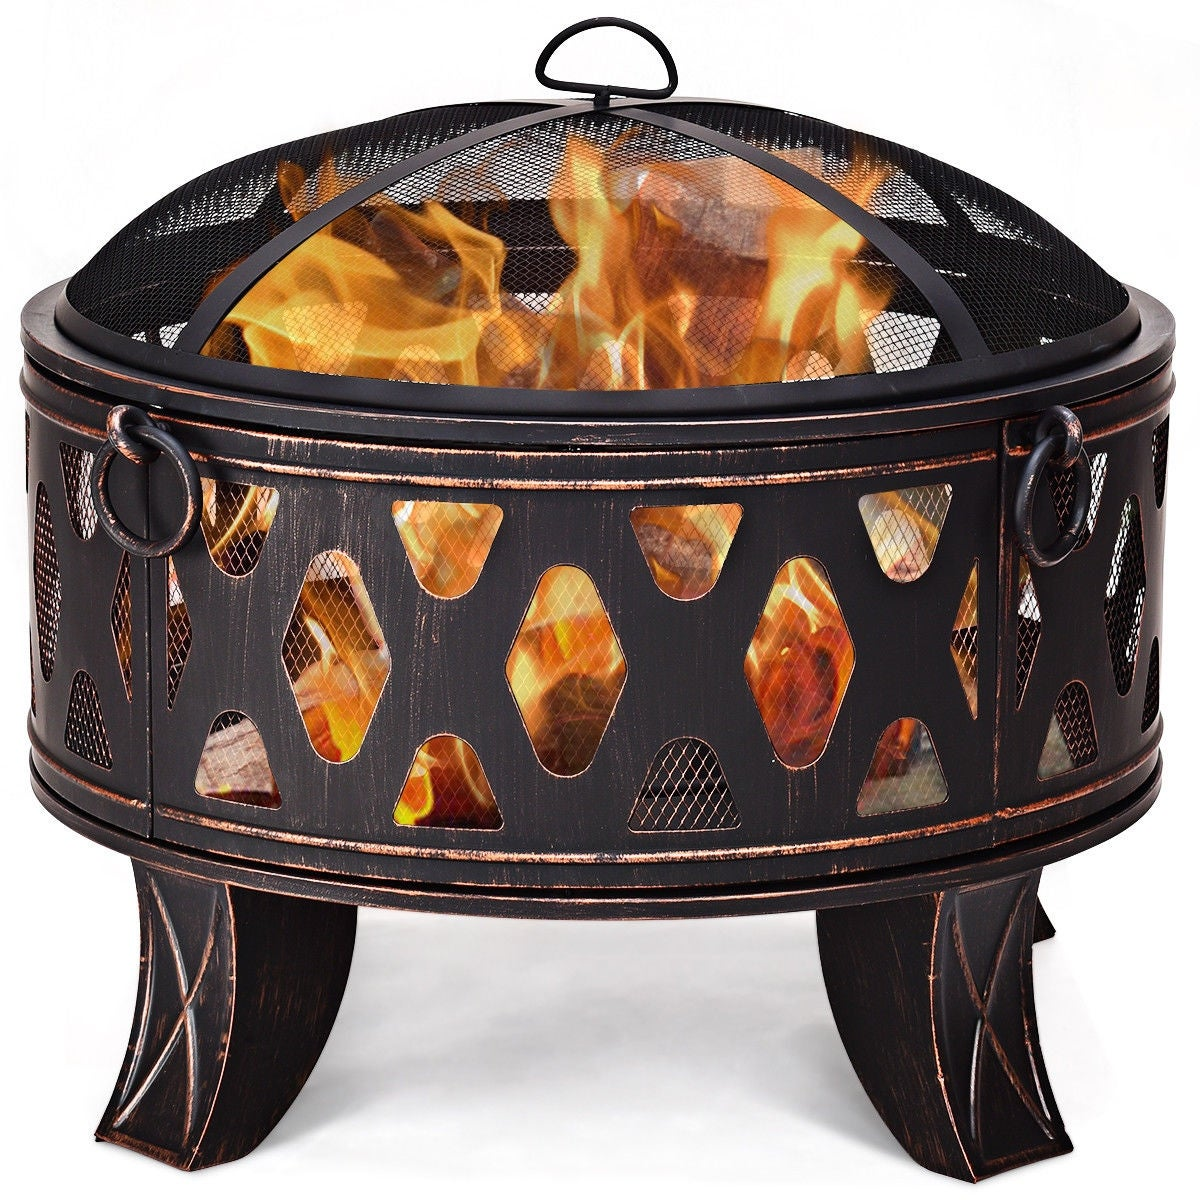 Camping Fire Pit >> Costway 28 Outdoor Fire Pit Bbq Portable Camping Firepit Heater Patio Garden